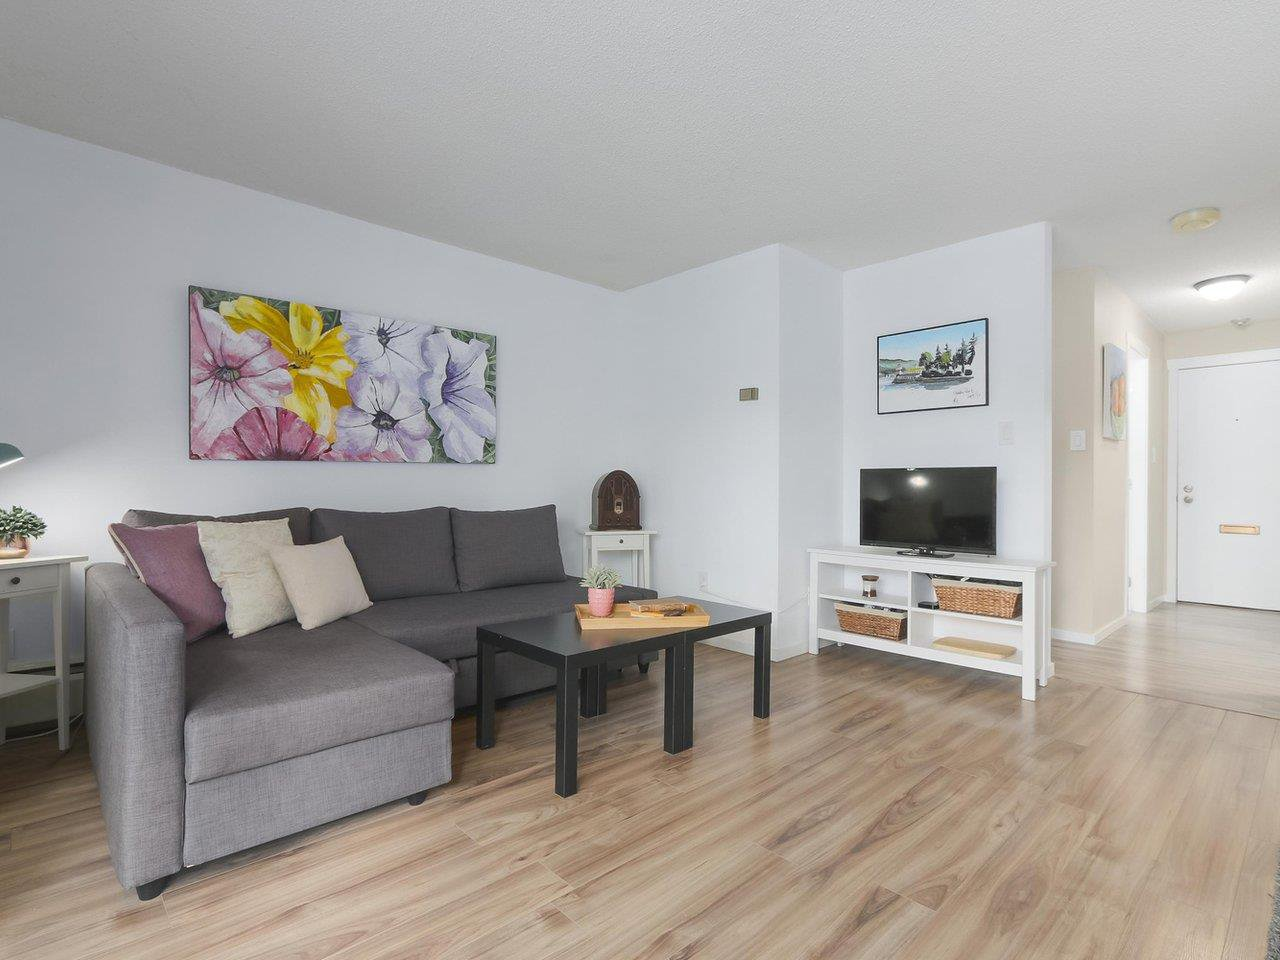 """Main Photo: 212 610 THIRD Avenue in New Westminster: Uptown NW Condo for sale in """"JAE MAR COURT"""" : MLS®# R2397804"""